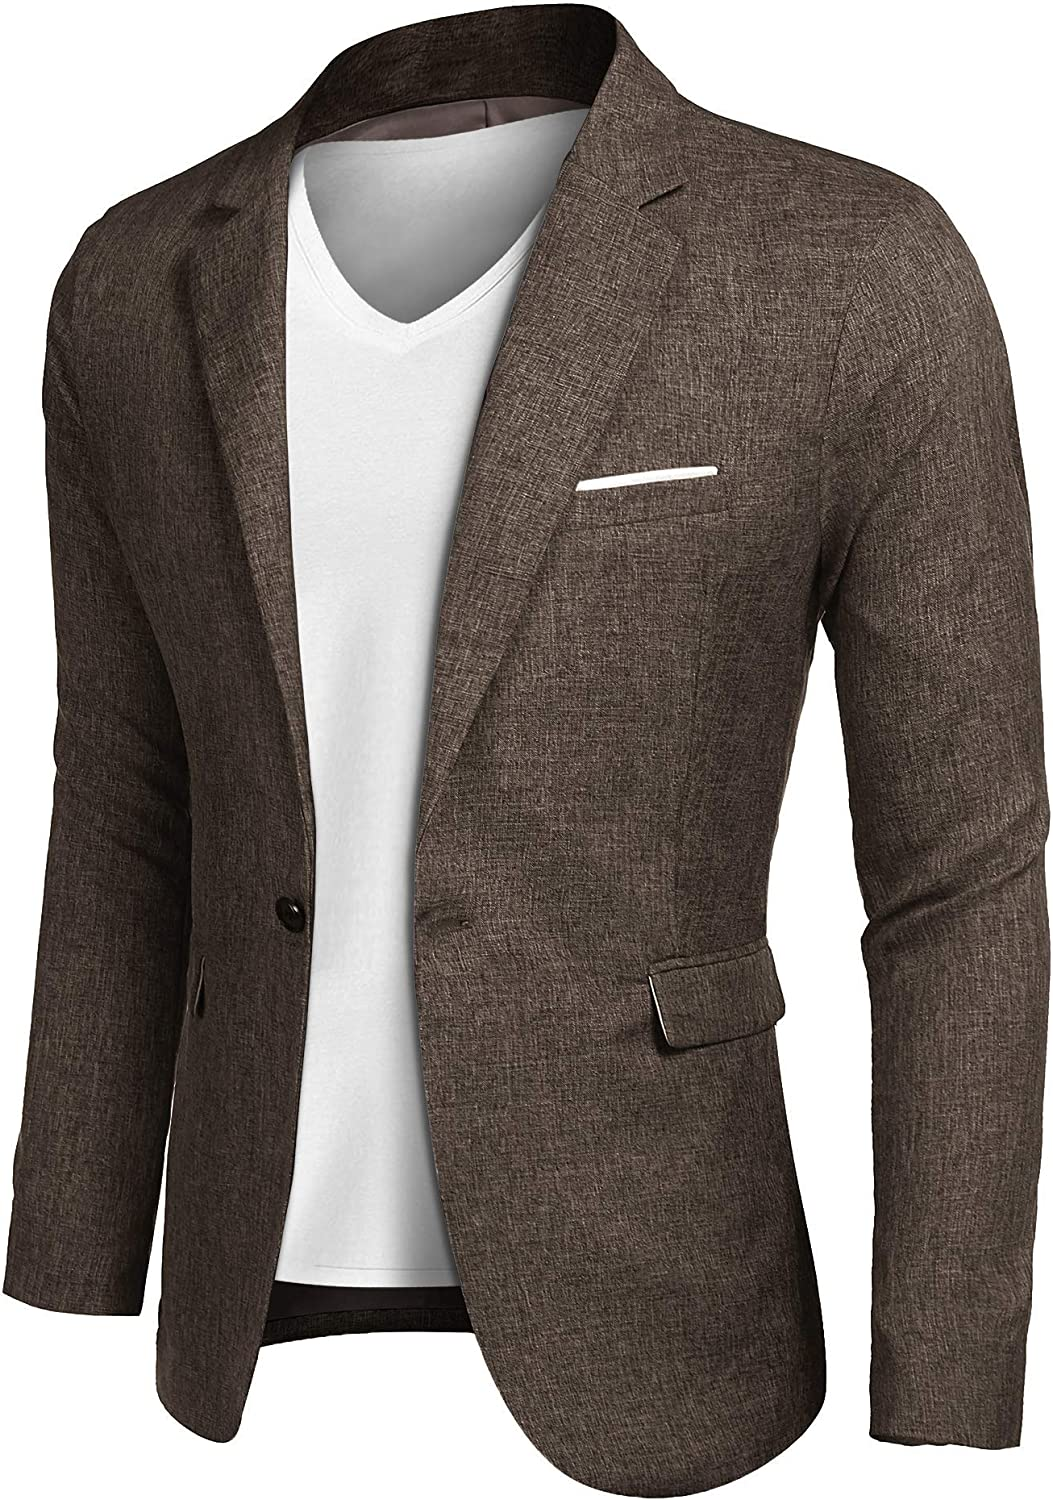 The Best Sleeve Slim Office Blazer With Stand